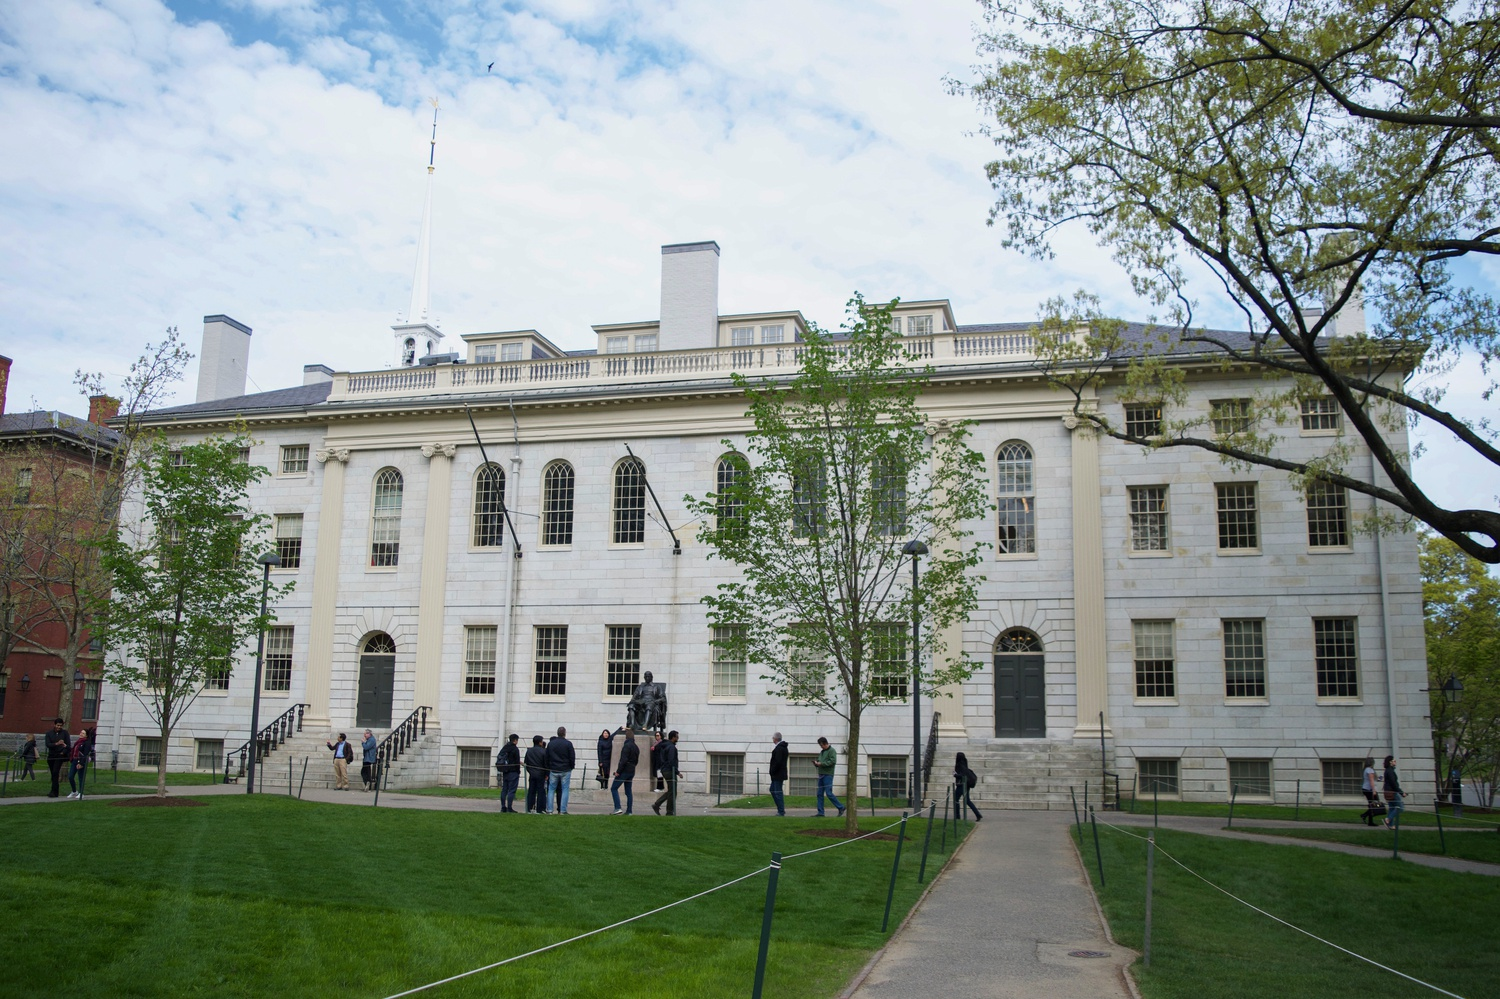 Freshmen will move into their dorms in Harvard Yard on Tuesday while incoming student Ismail B. Ajjawi '23 — a Palestinian resident of Tyre, Lebanon — is still fighting to make it to campus.